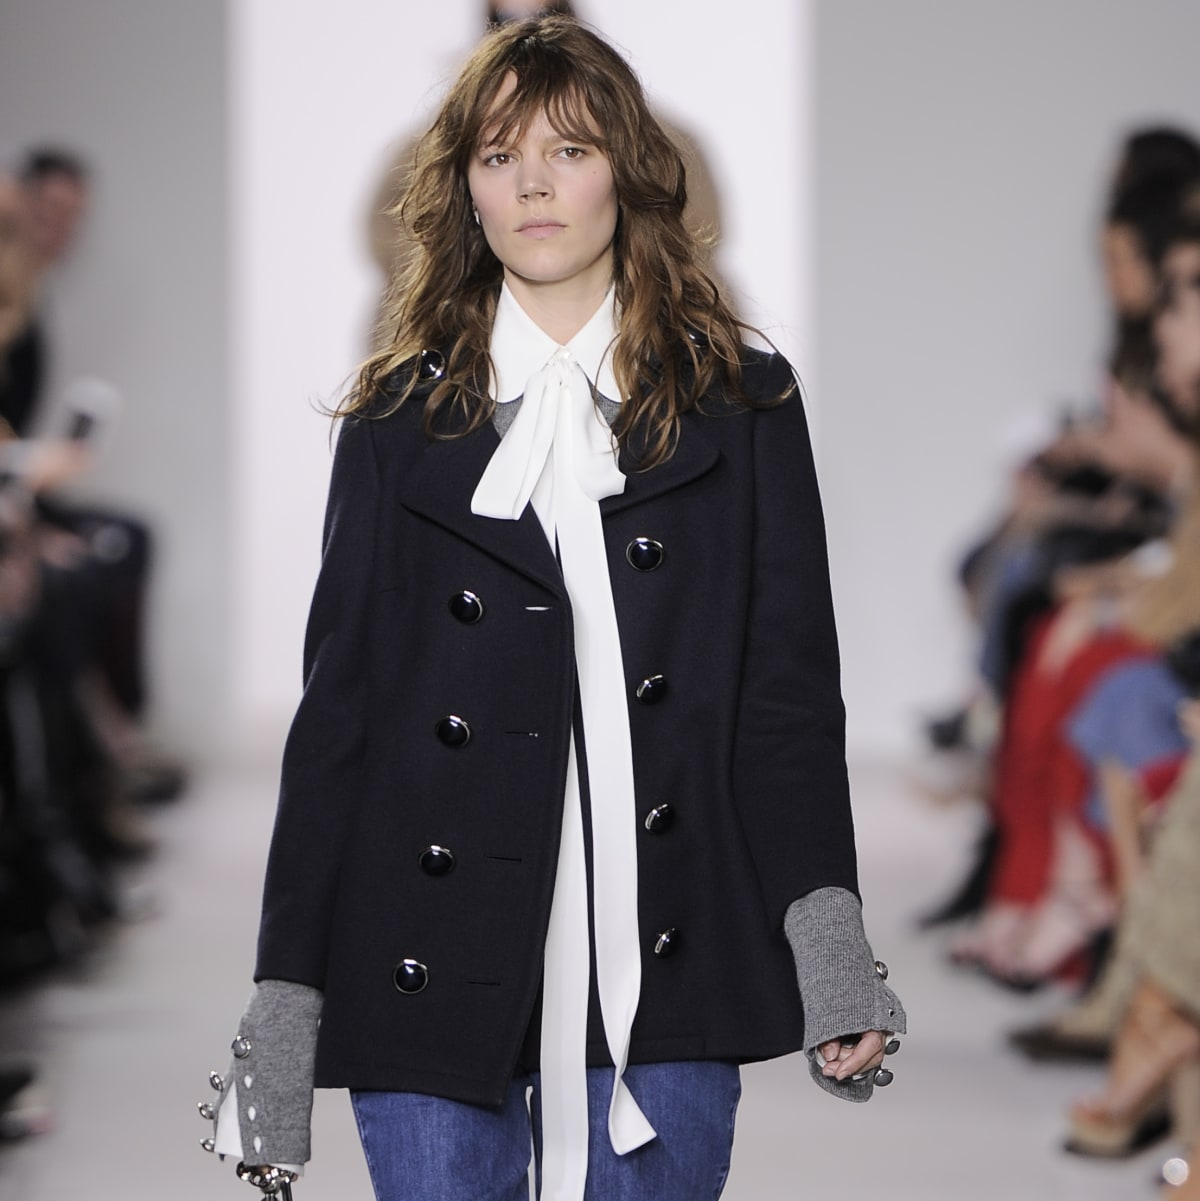 Michael Kors fall 2016 collection look 1